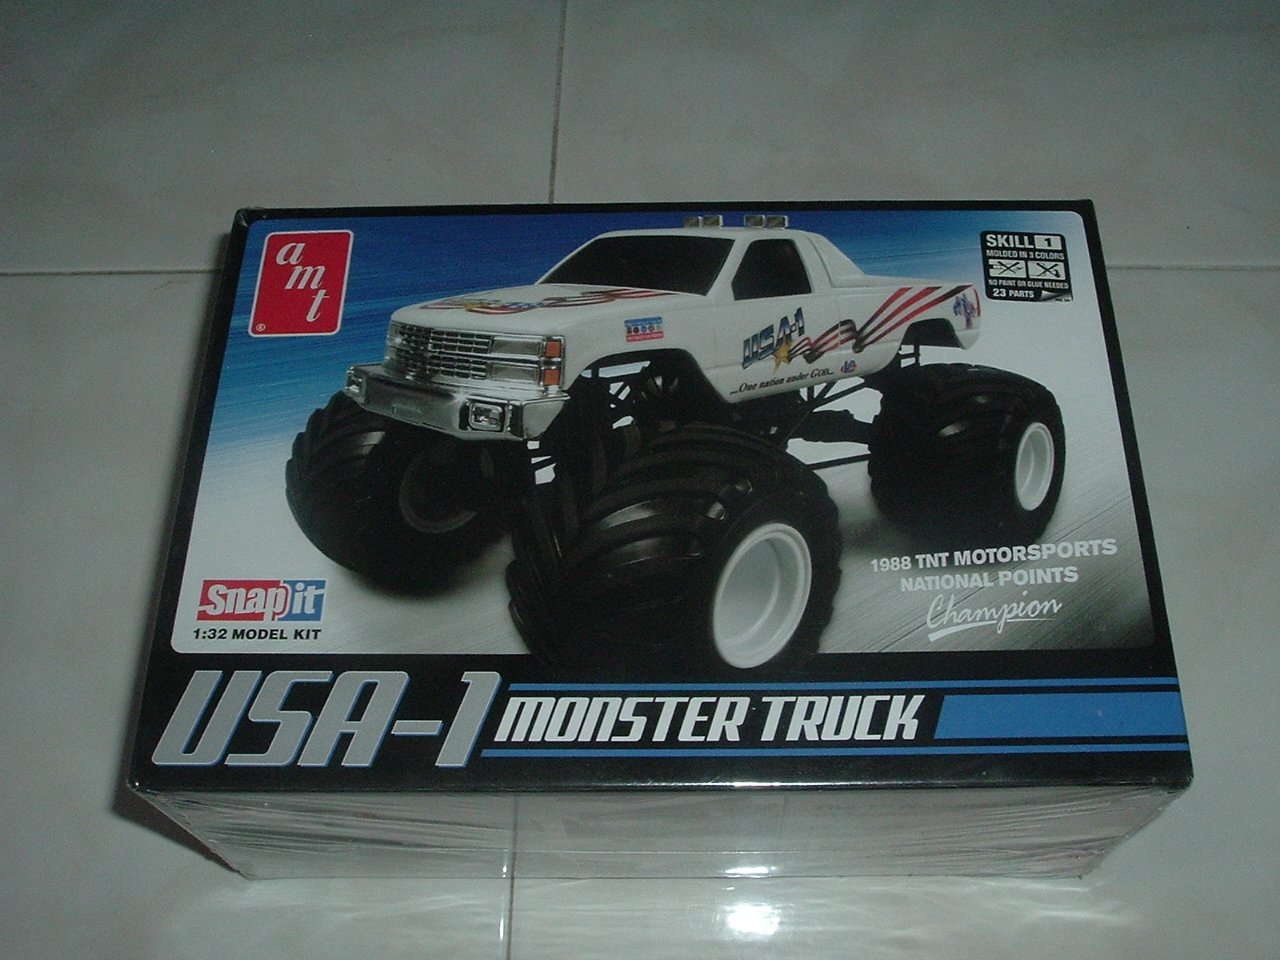 USA-1 Monster Truck  Model Kit